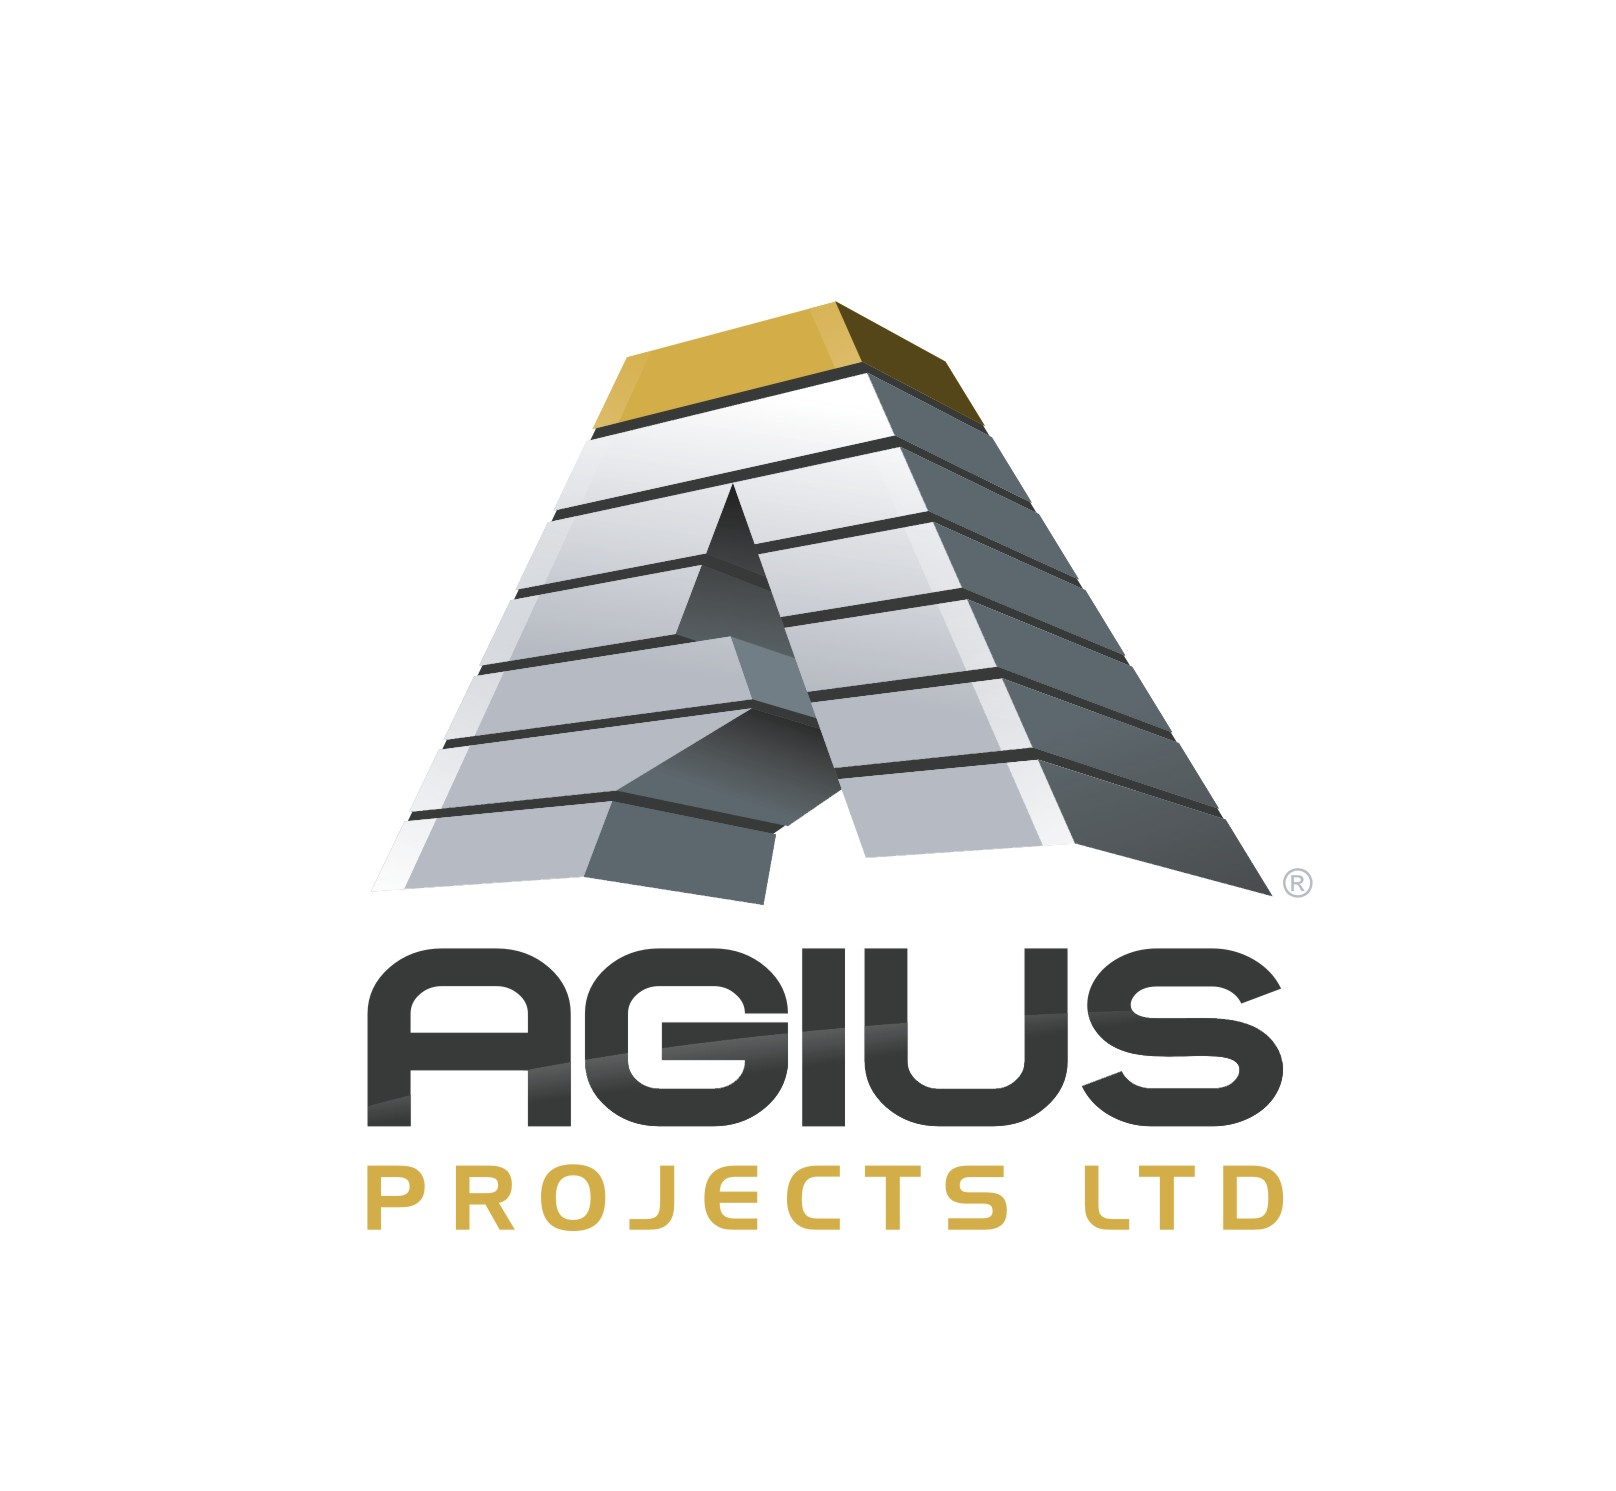 Agius projects